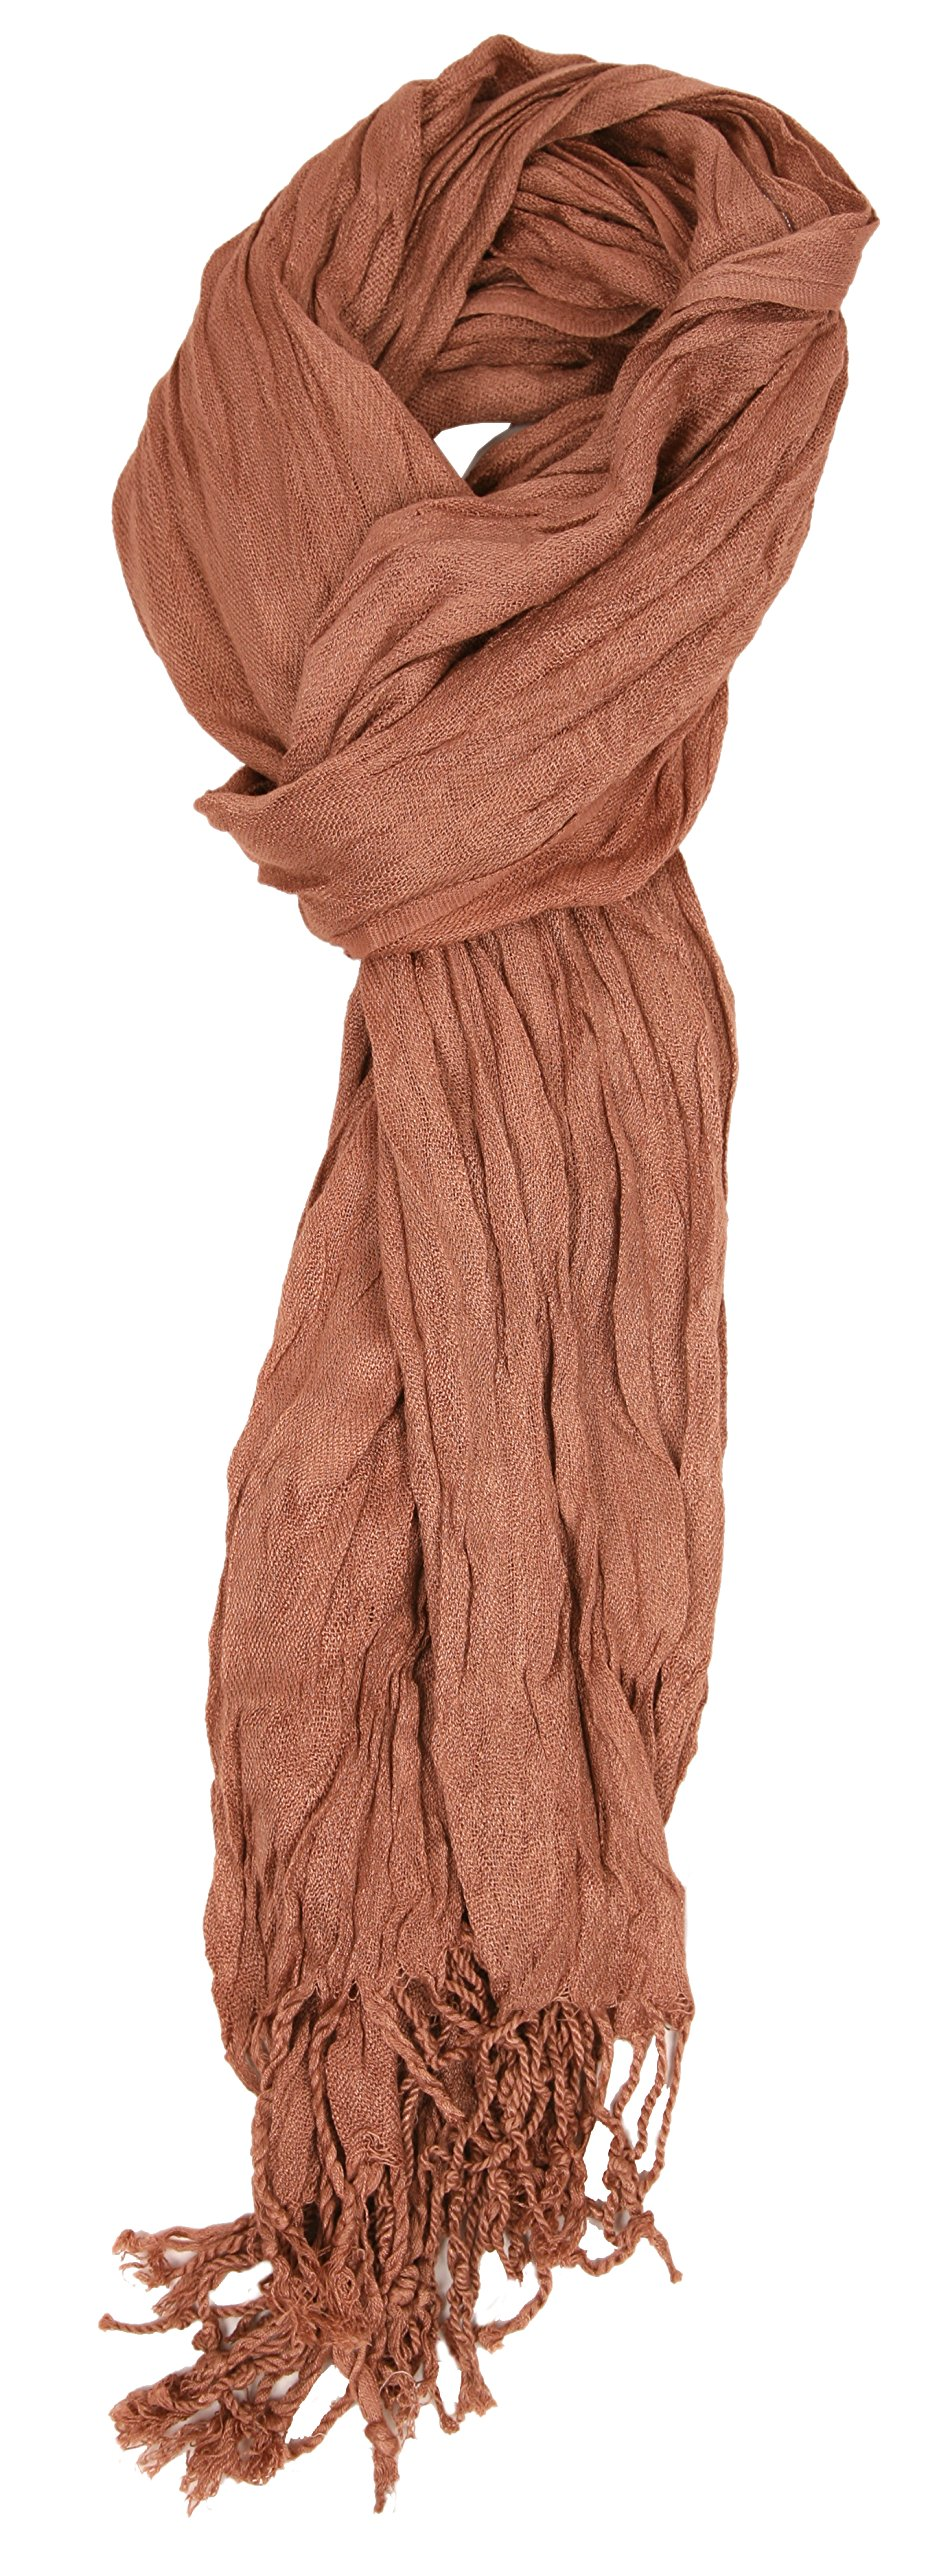 Love Lakeside-Women's Must Have Solid Color Crinkle Scarf (One, Cinnamon)